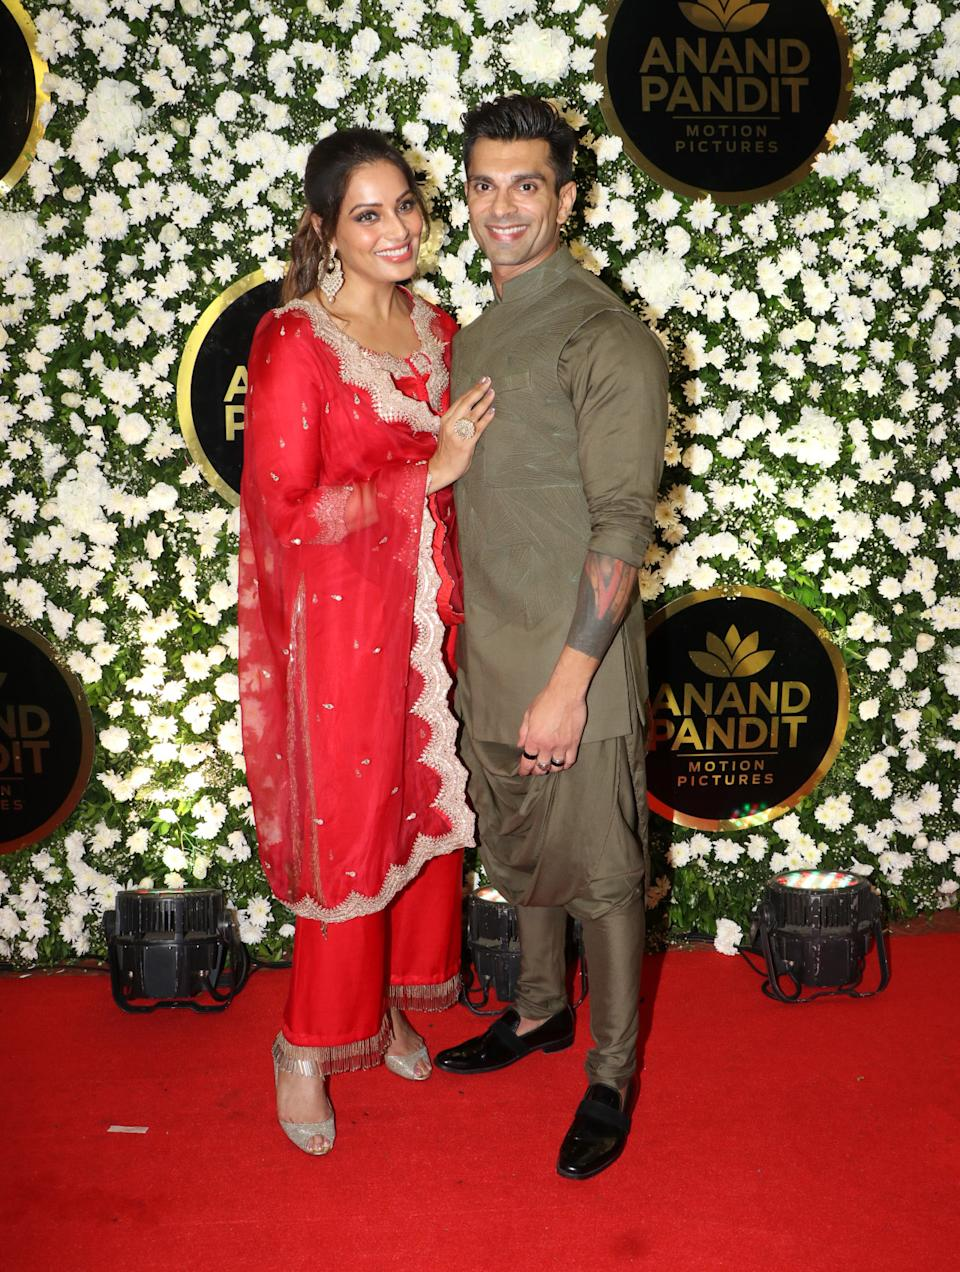 Bipasha Basu looks stunning in red, while Karan Singh Grover is at his ethnic best.